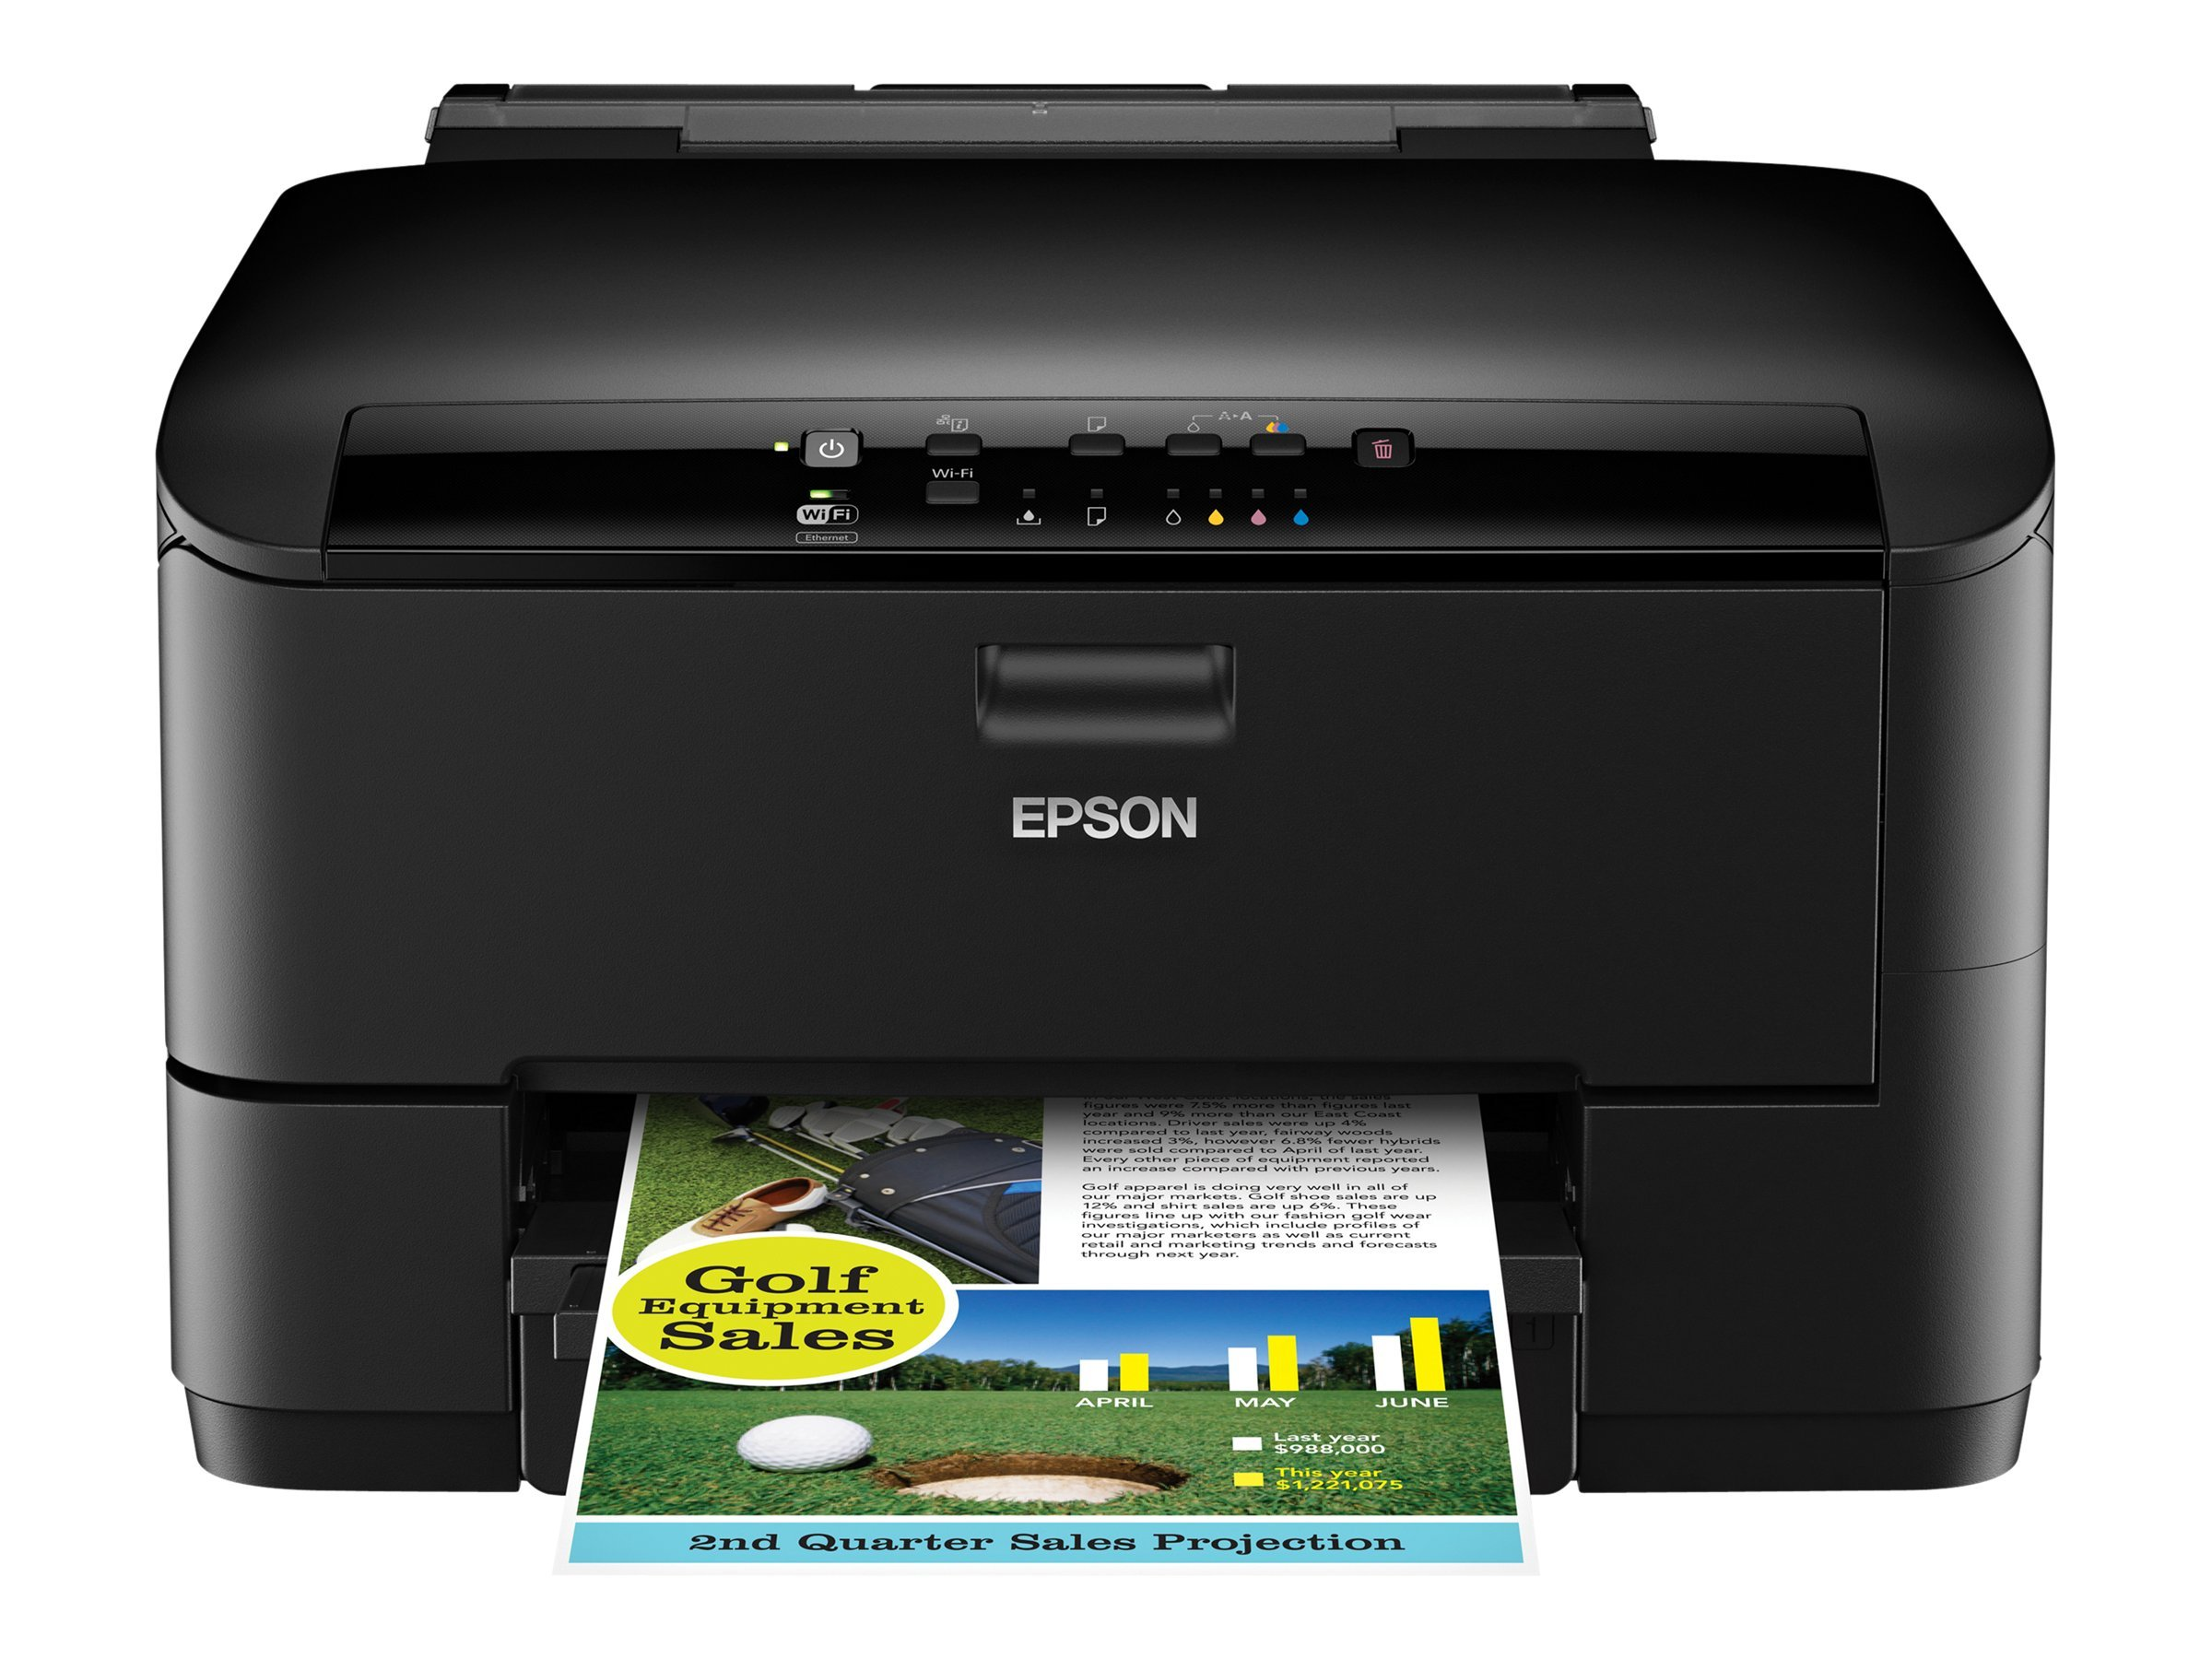 Epson WorkForce Pro WP-4020 Inkjet Printer - $149.99 less instant rebate of $37.00, C11CB30201, 13399794, Printers - Ink-jet